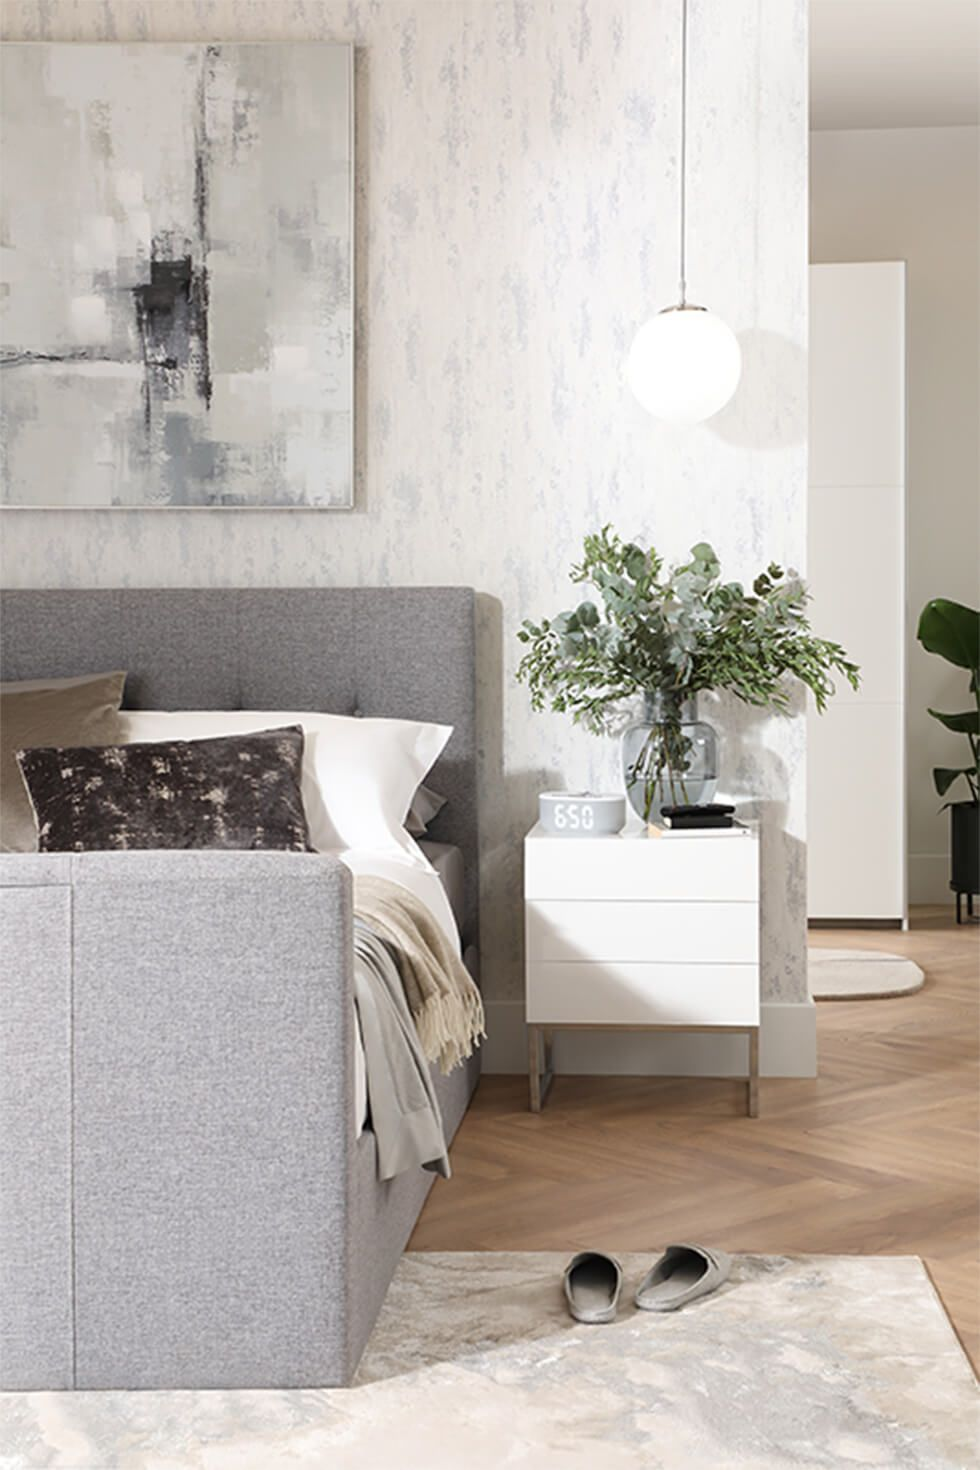 White bedroom featuring a grey fabric bed and a white side table with a vase of plants